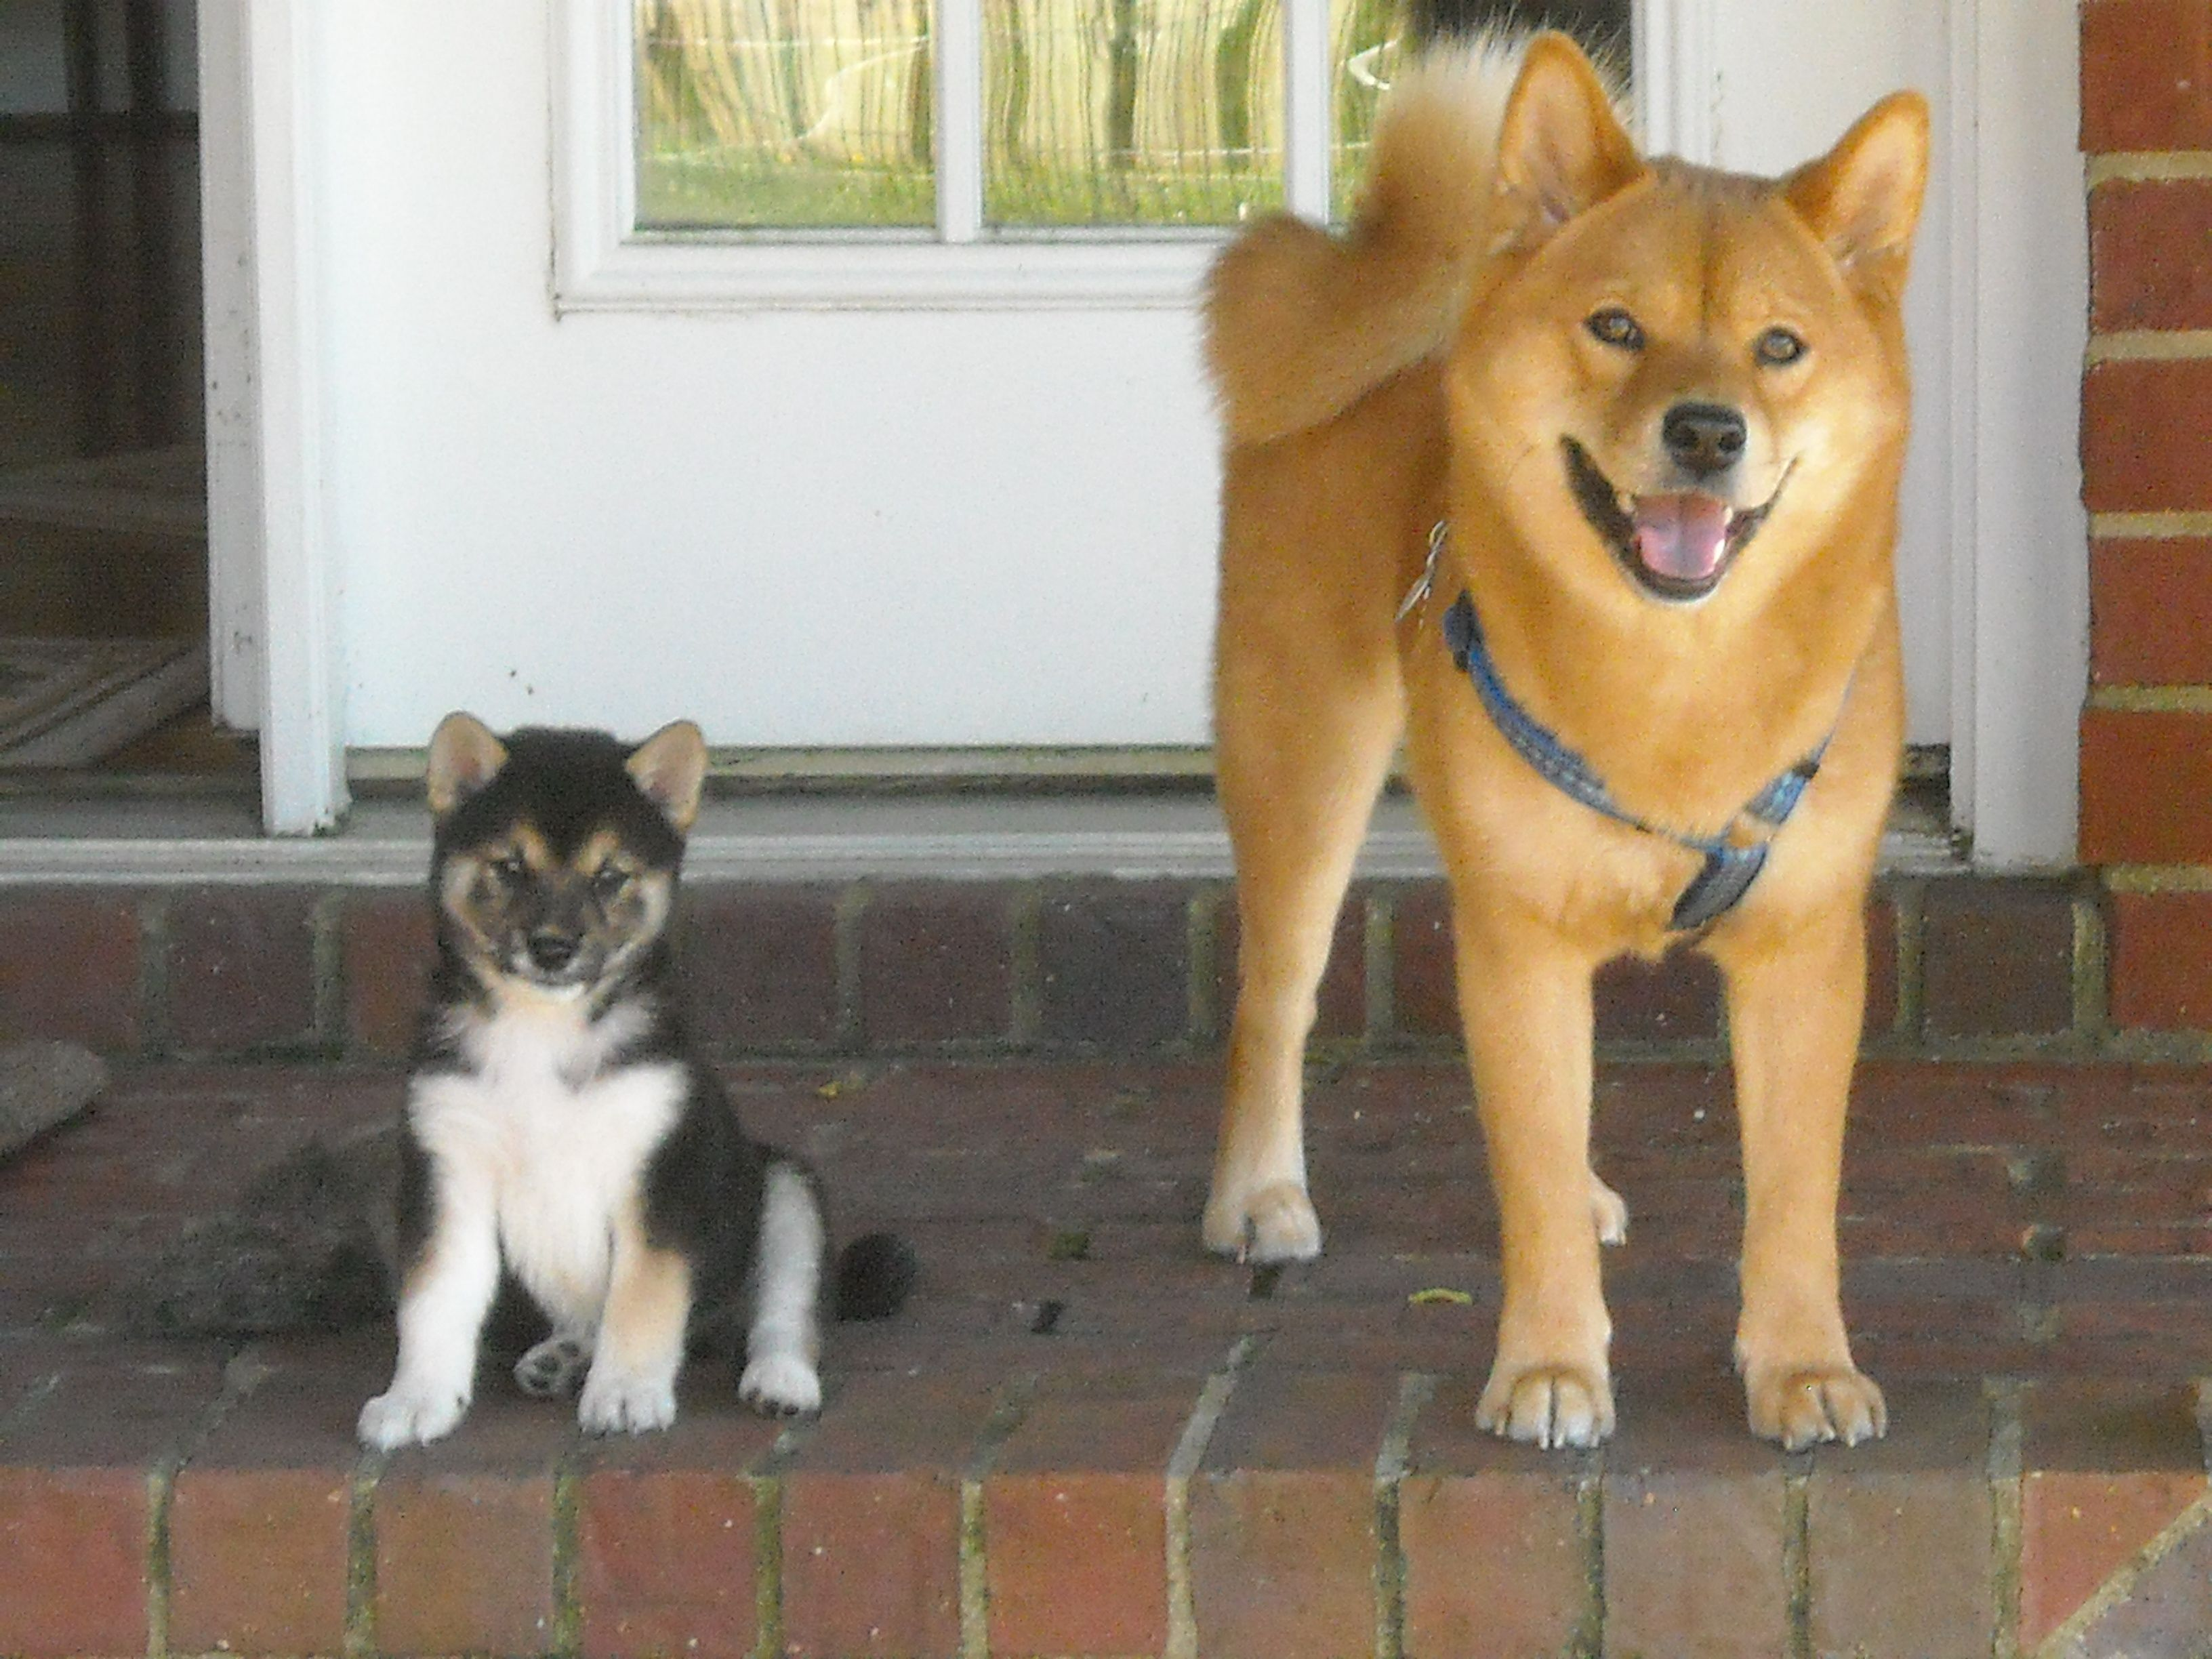 Black and Tan Shiba Inu puppy named Romeo and his older friend, Payton, a red Shiba.